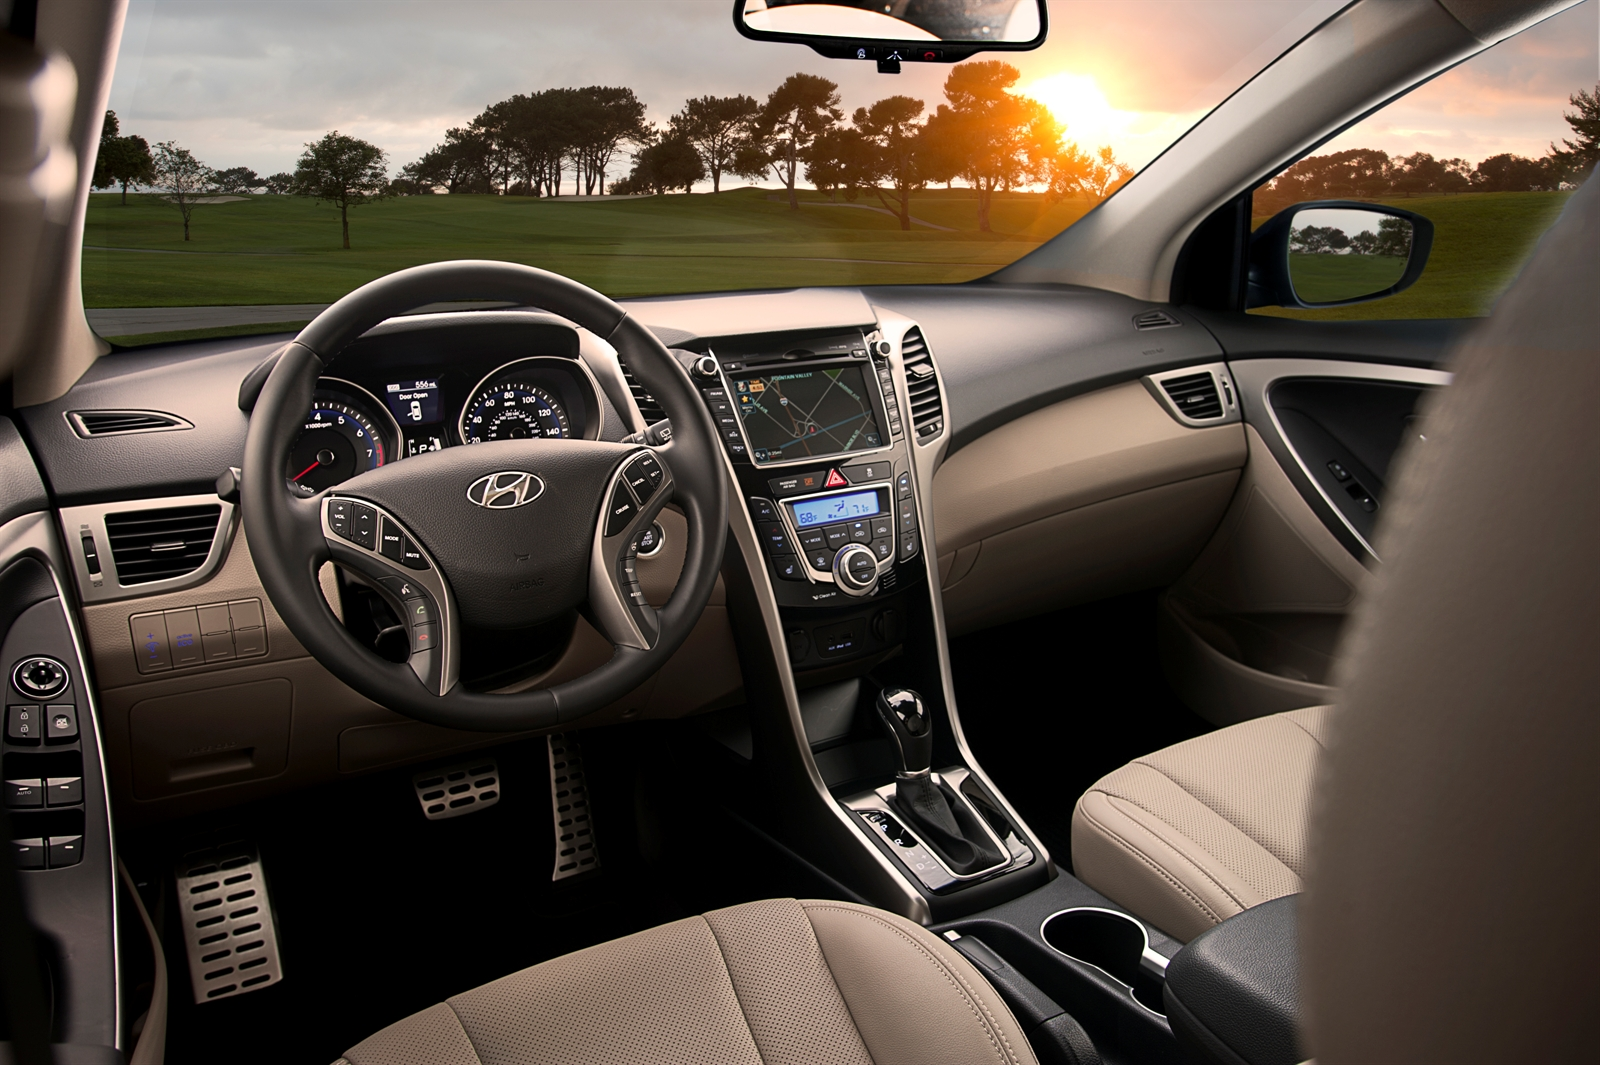 Test Driving Life: Hyundai Elantra GT - The Right Recipe